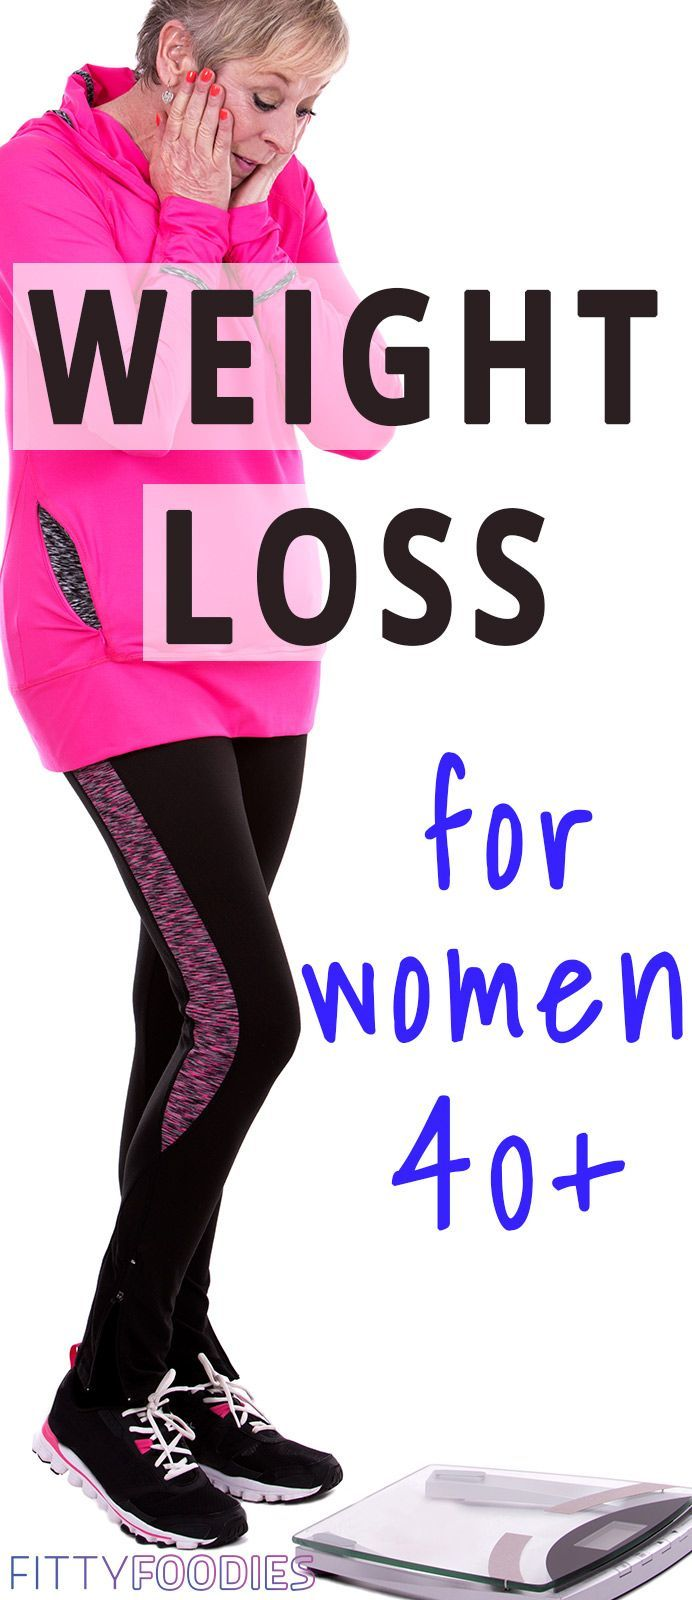 Lose weight fast event